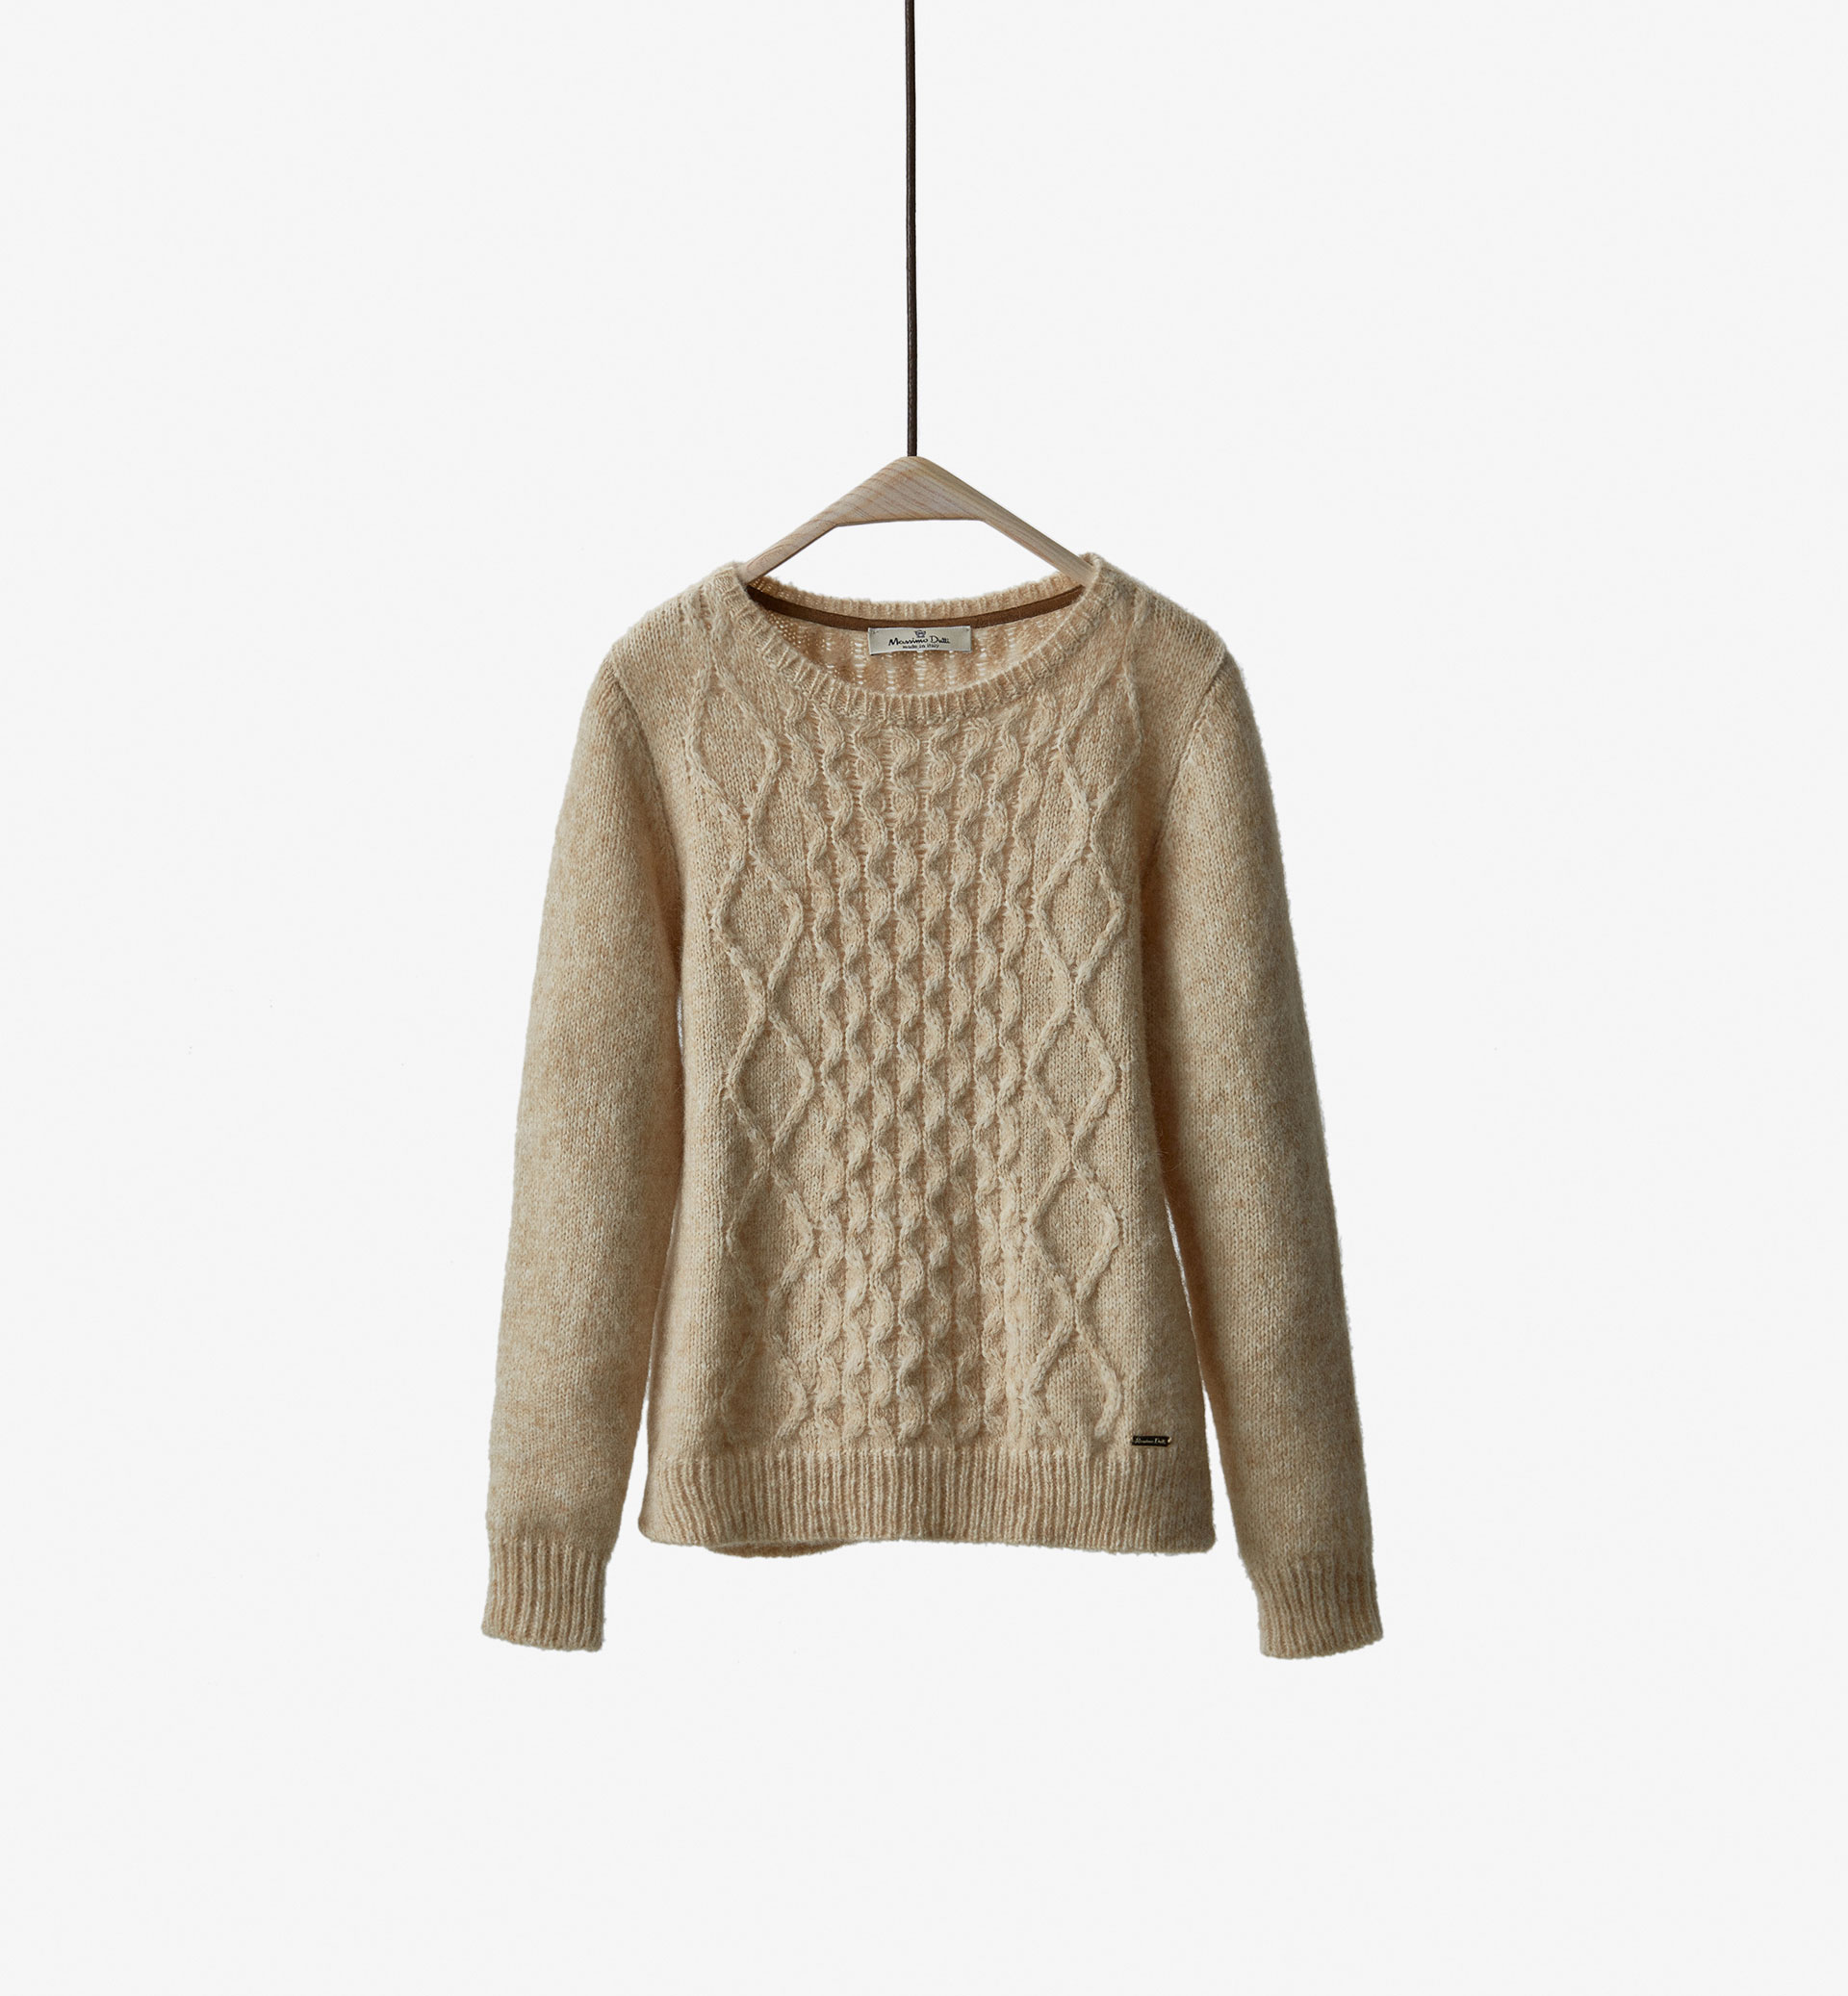 LIMITED EDITION CABLE KNIT DETAIL SWEATER